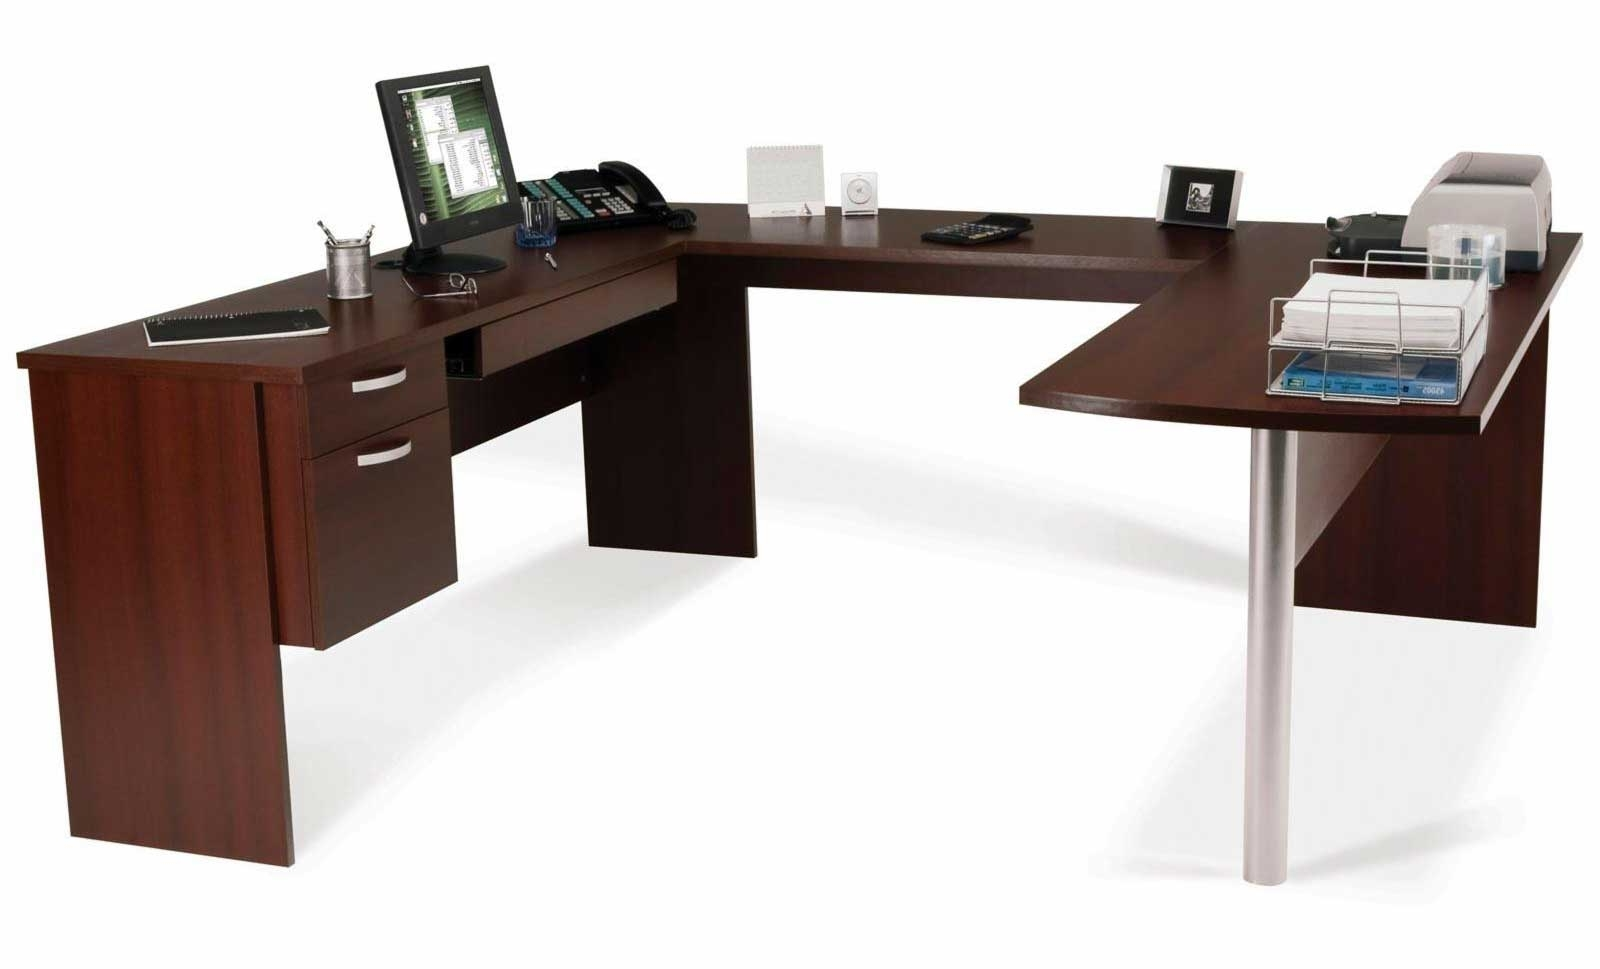 2019 Oak U Shaped Corner Computer Desk — Interior Exterior Homie For U Shaped Computer Desks (View 2 of 20)